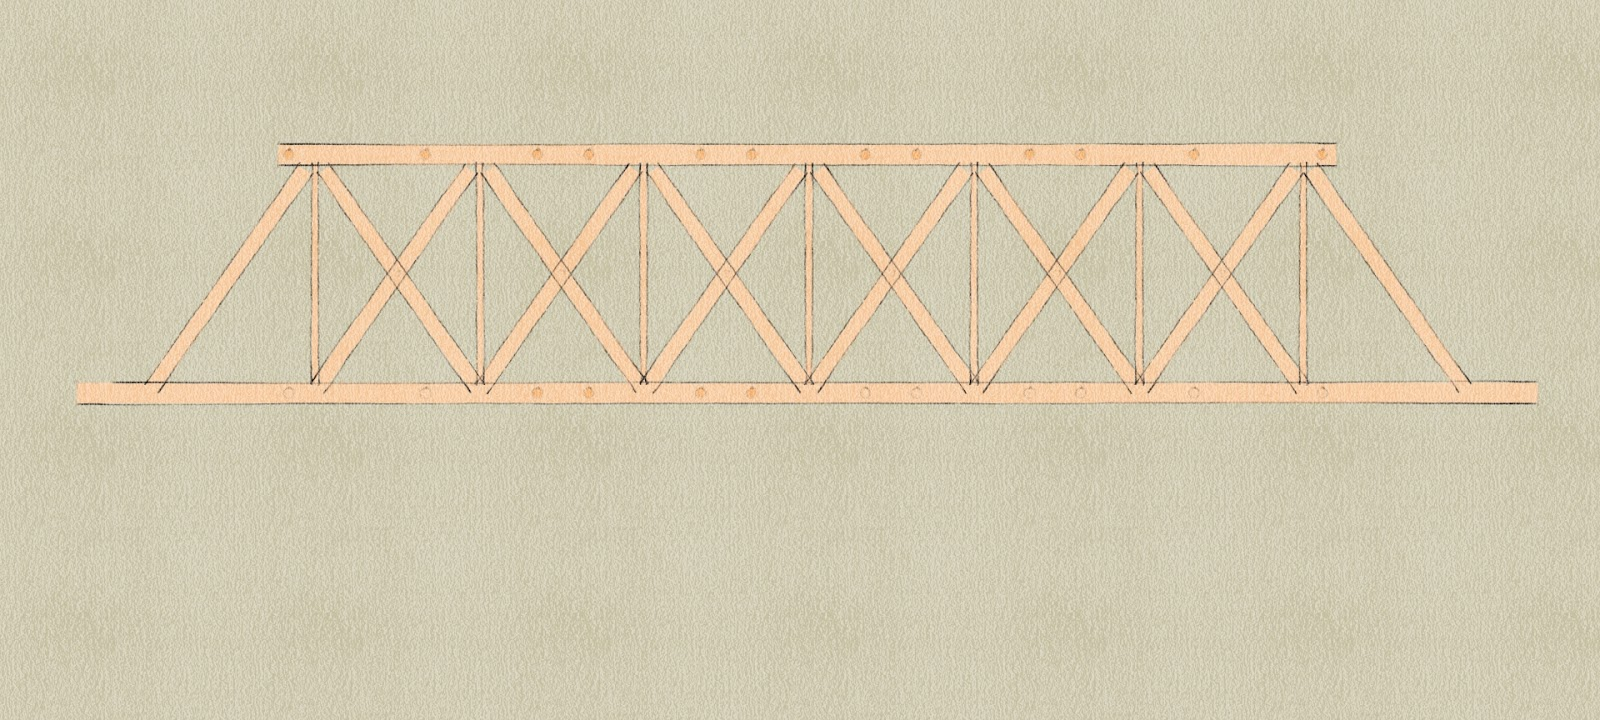 Paper Truss Bridge